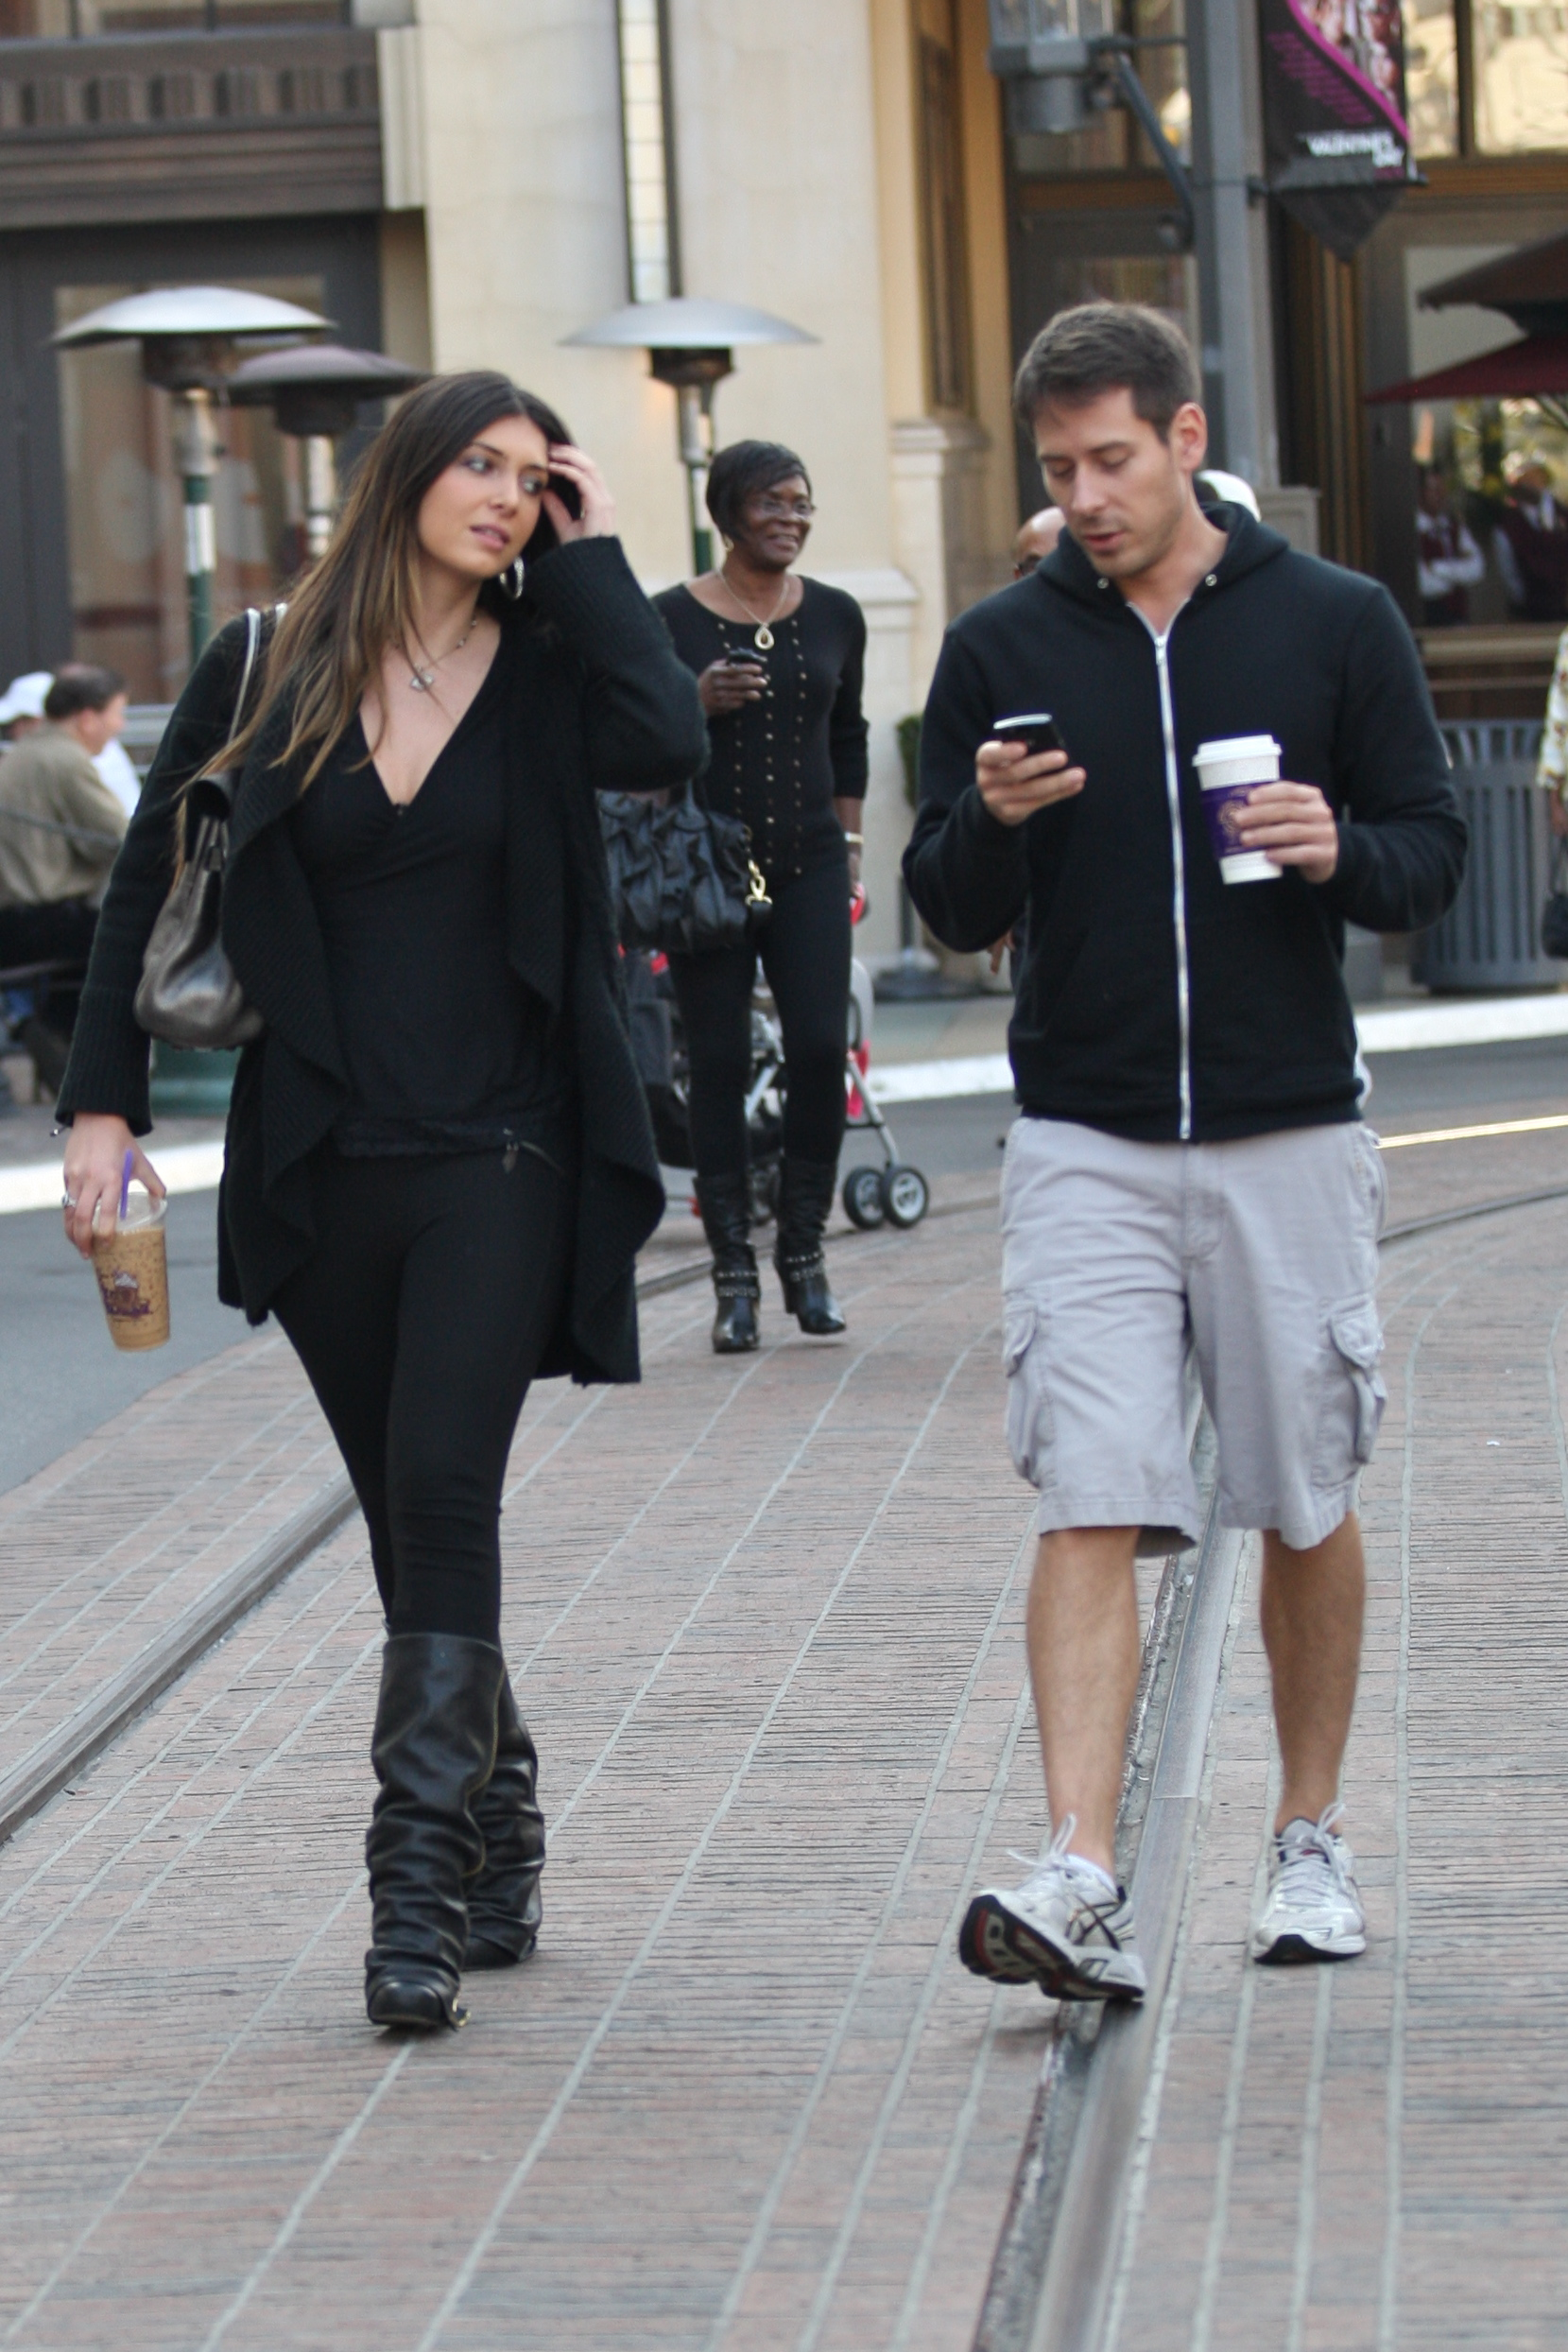 24897_celebrity-paradise.com-The_Elder-Brittny_Gastineau_2010-01-31_-_out_shopping_in_Hollywood_246_122_67lo.jpg